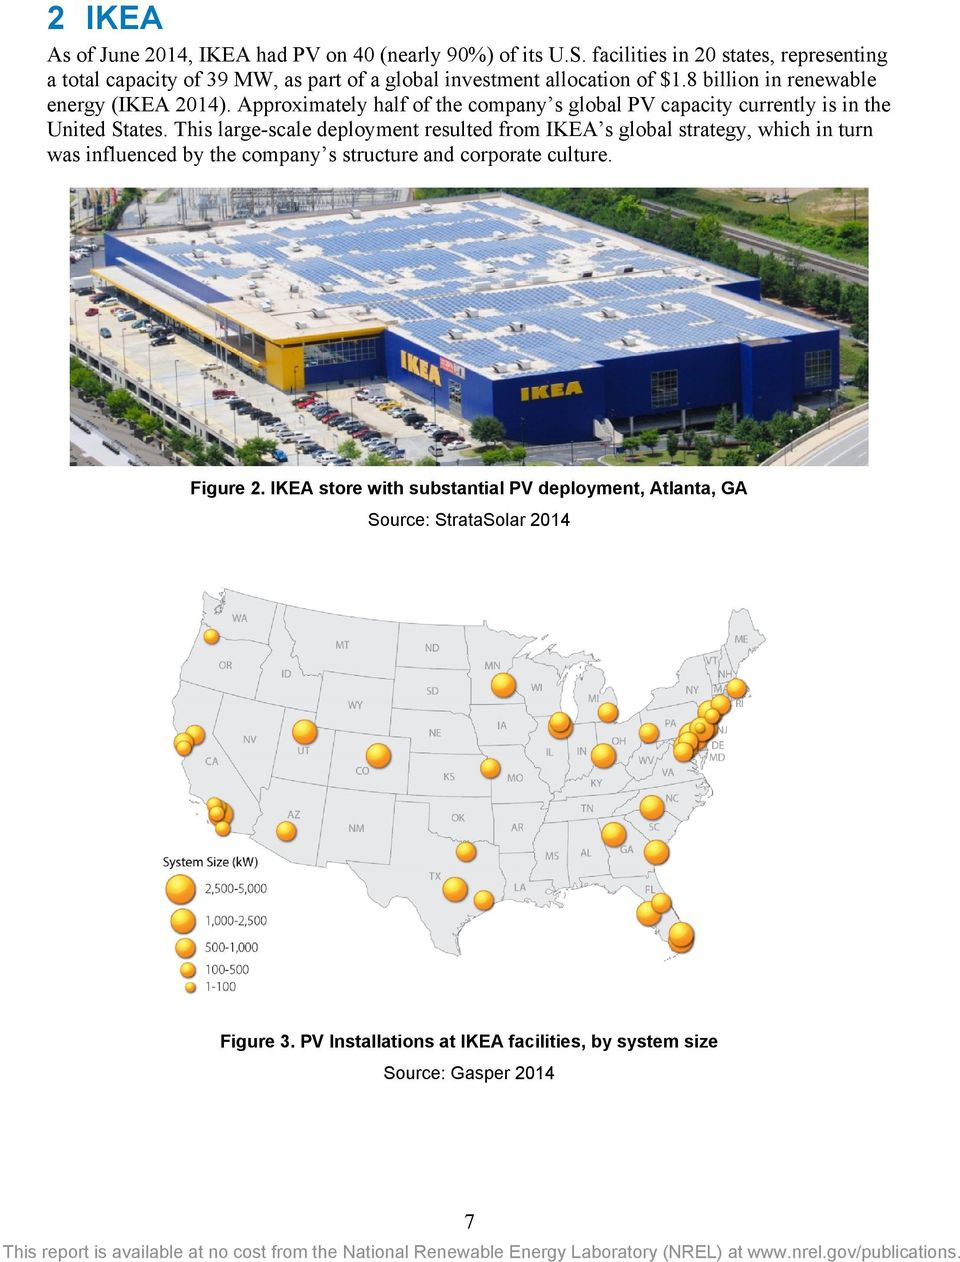 Approximately half of the company s global PV capacity currently is in the United States.